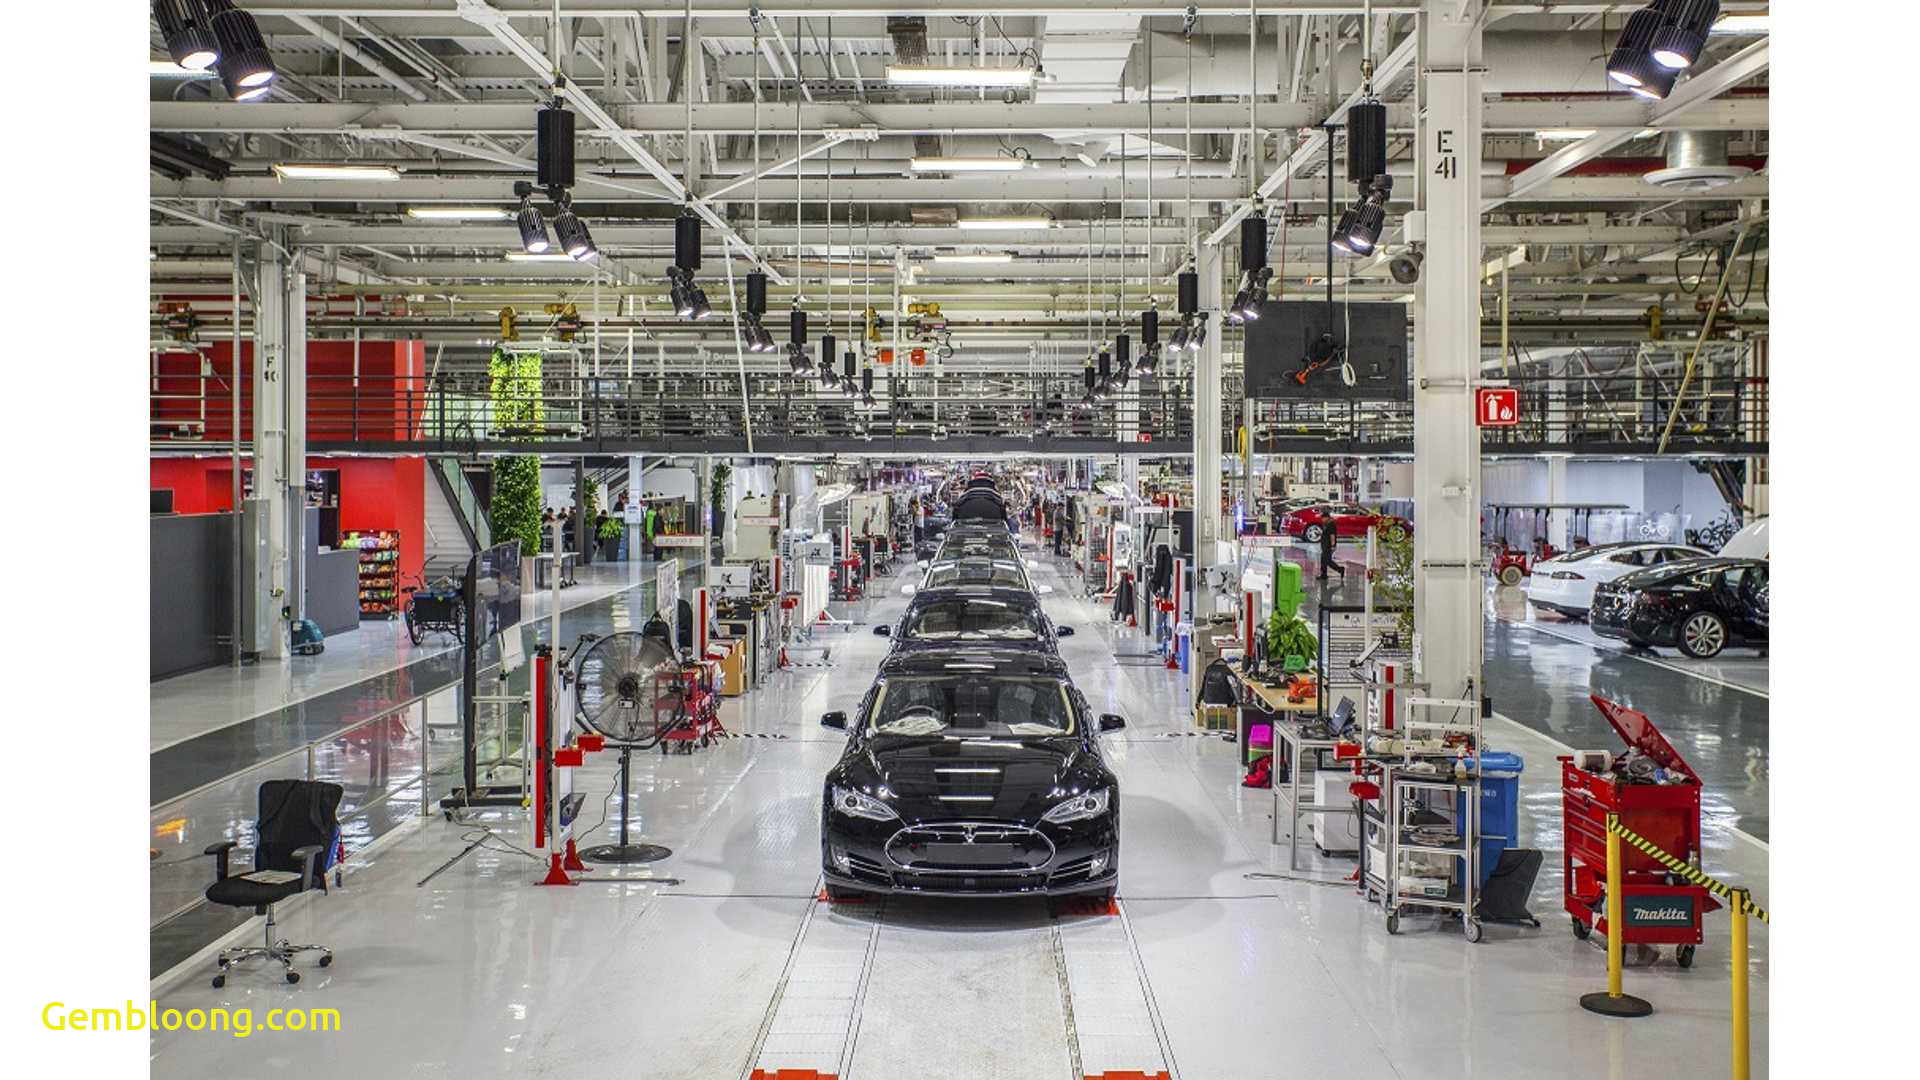 Will Tesla Beat Earnings Inspirational Tesla Q2 2015 Earnings Beat Estimates but Model S